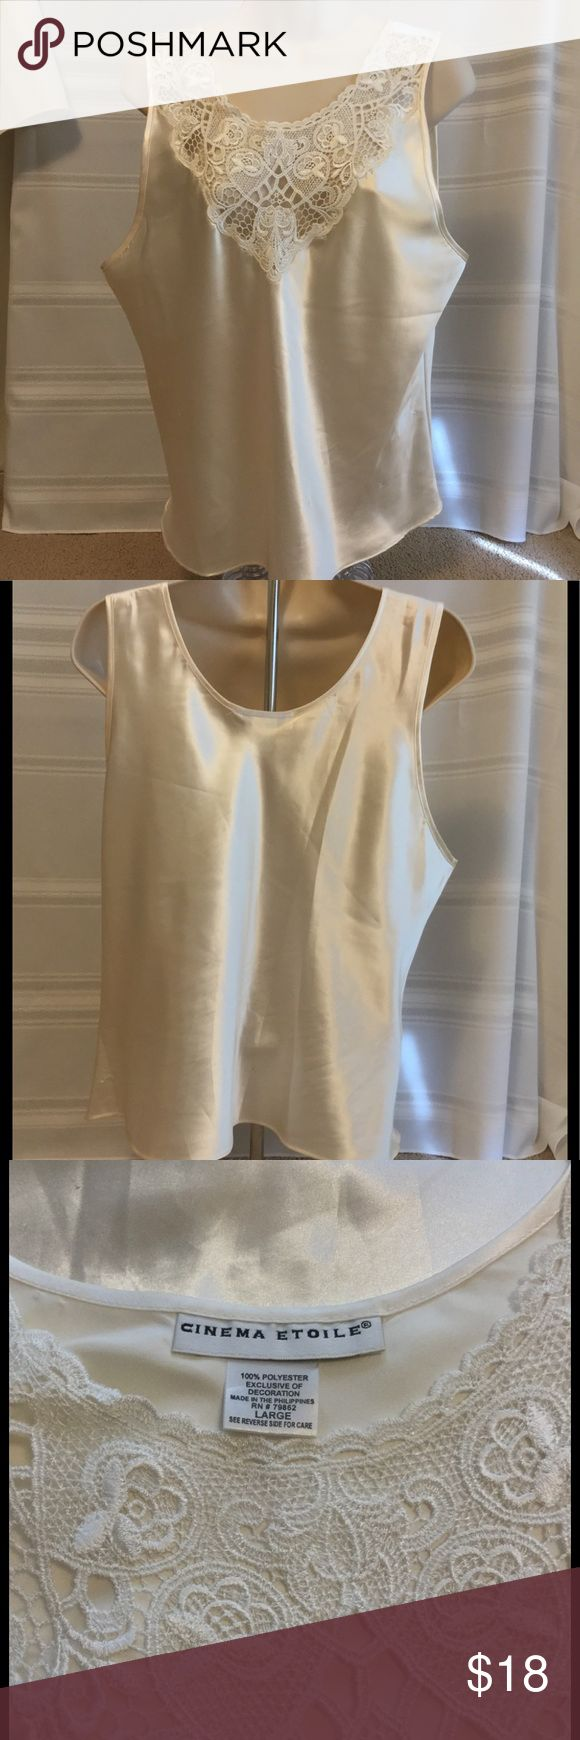 """Cinema Etoile Satin Camii Sz L Cinema Etoile Cami with delicate lace Sz L. 100% polyester with feel of Satin. Bust measures 19"""", Length is 25"""". Excellent condition. BN65 Cinema Etoile^ Intimates & Sleepwear Chemises & Slips"""